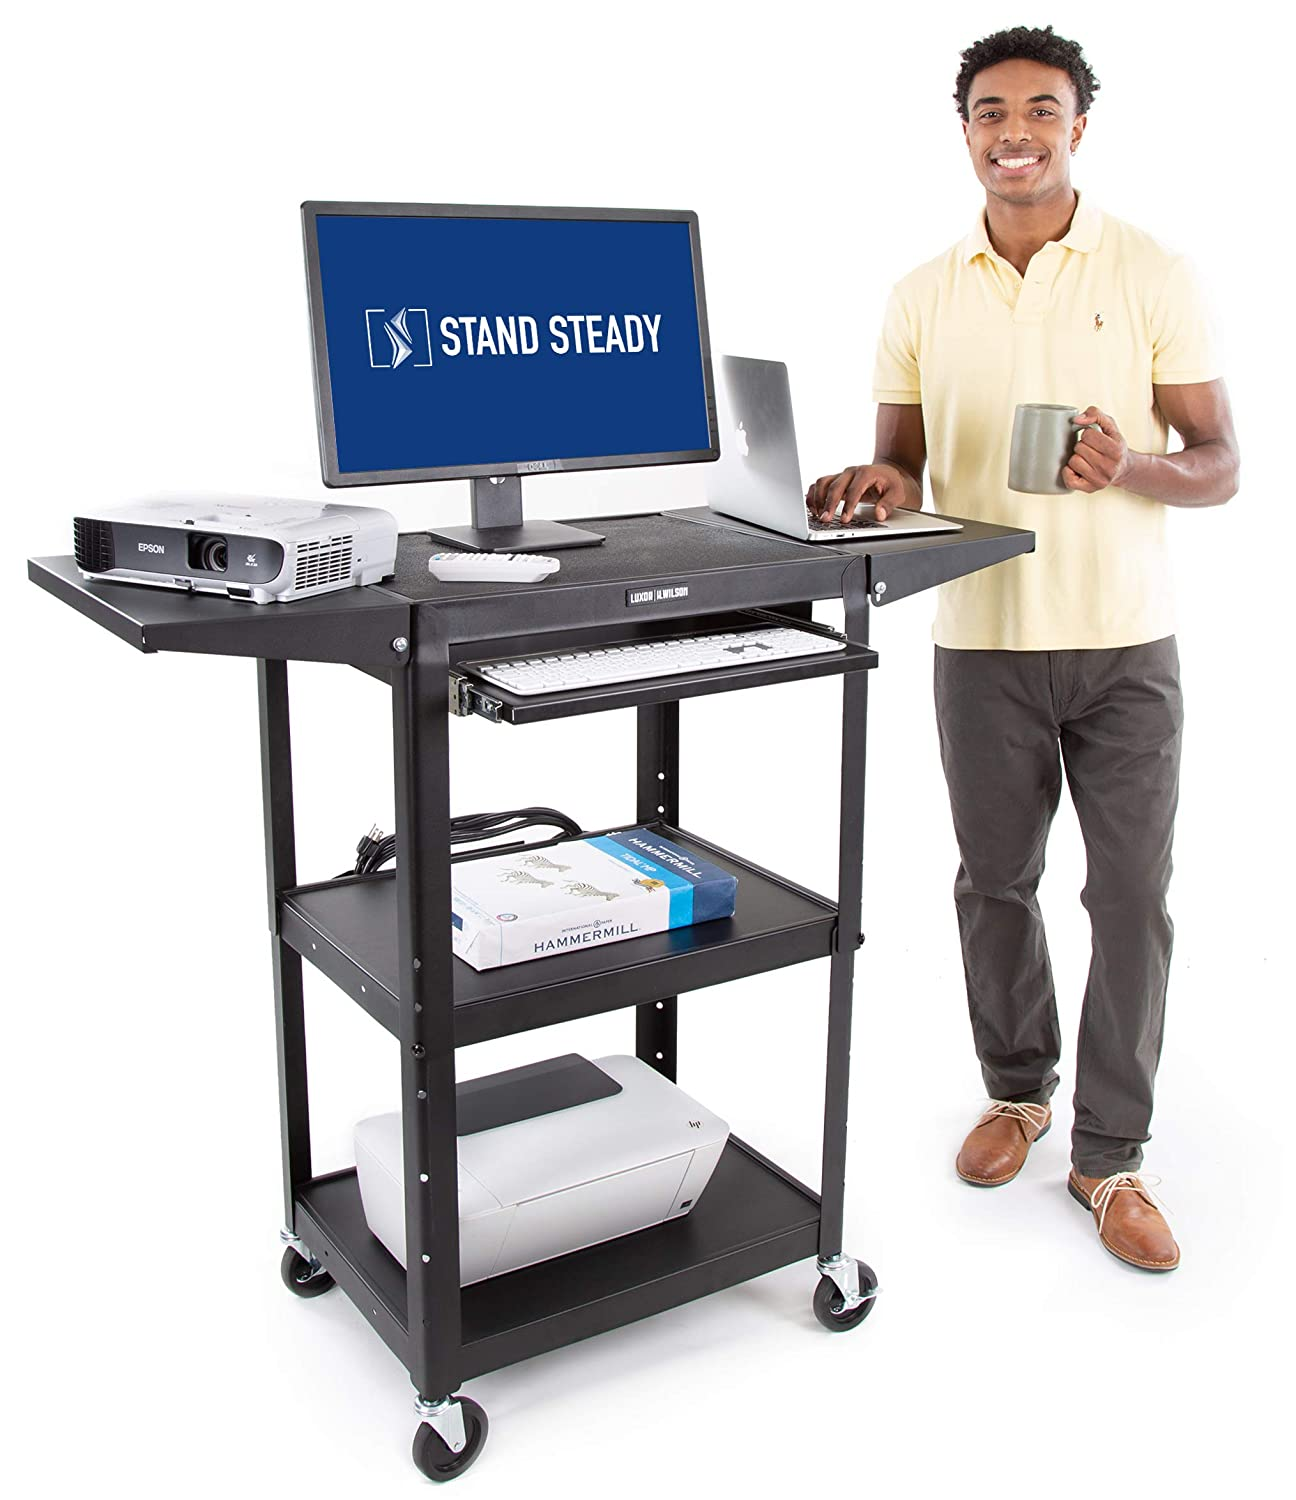 Line Leader AV Cart with Drop Leaf Shelves and Pullout Laptop Tray - Height Adjustable Utility Cart - Includes Power Strip and Cord Management - Great for Presentations (Black / 46 x 18)